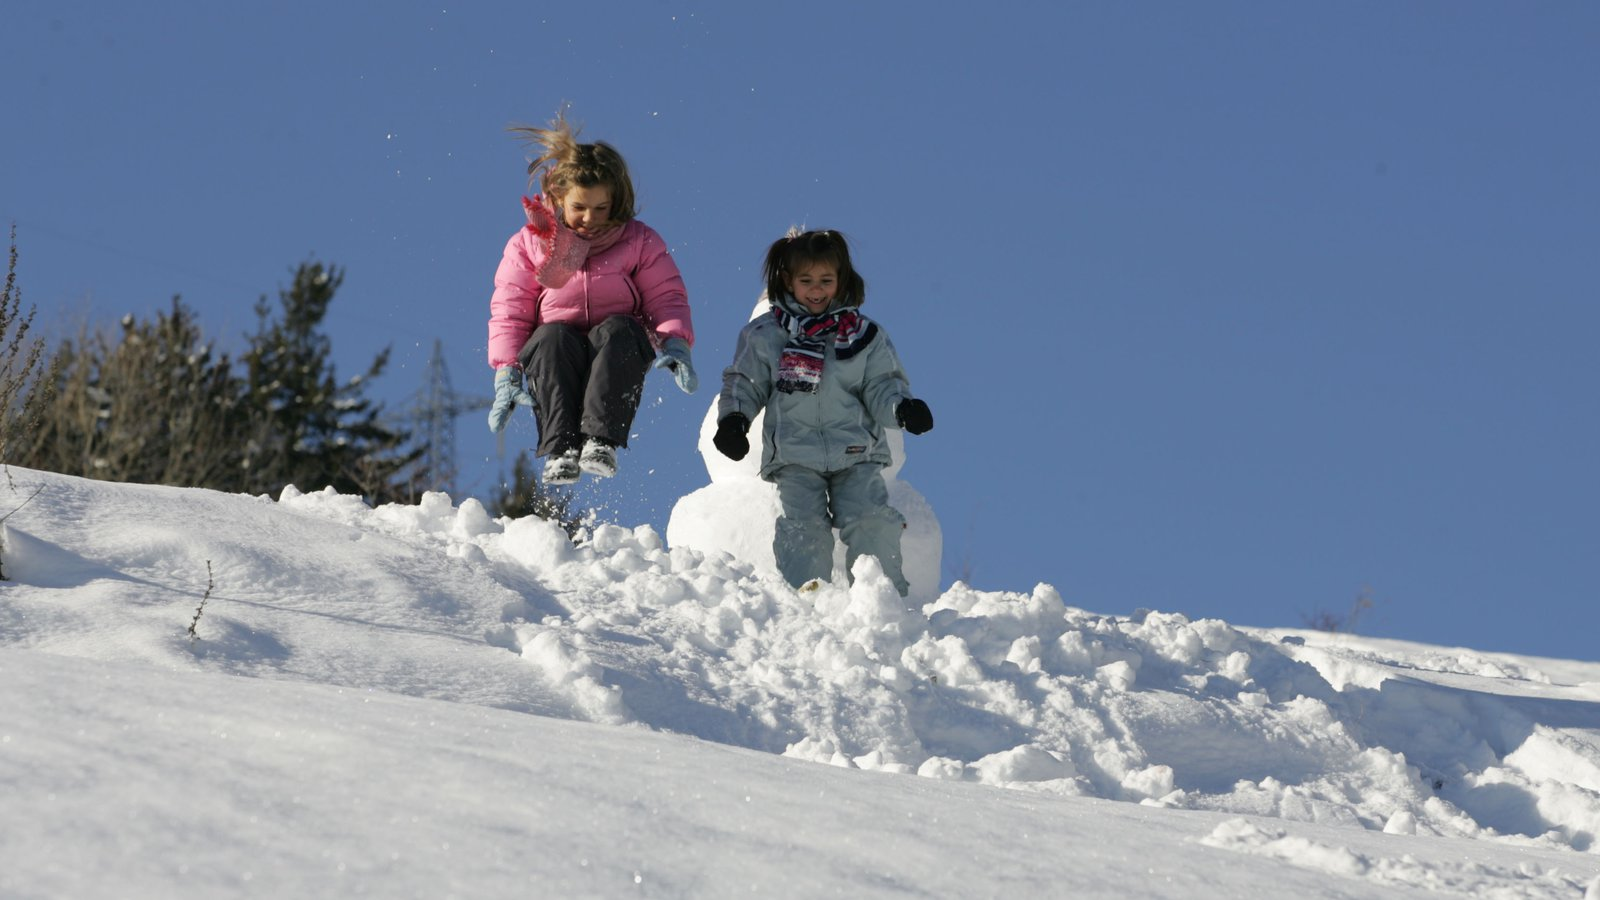 Livigno Ski Area featuring snow as well as children